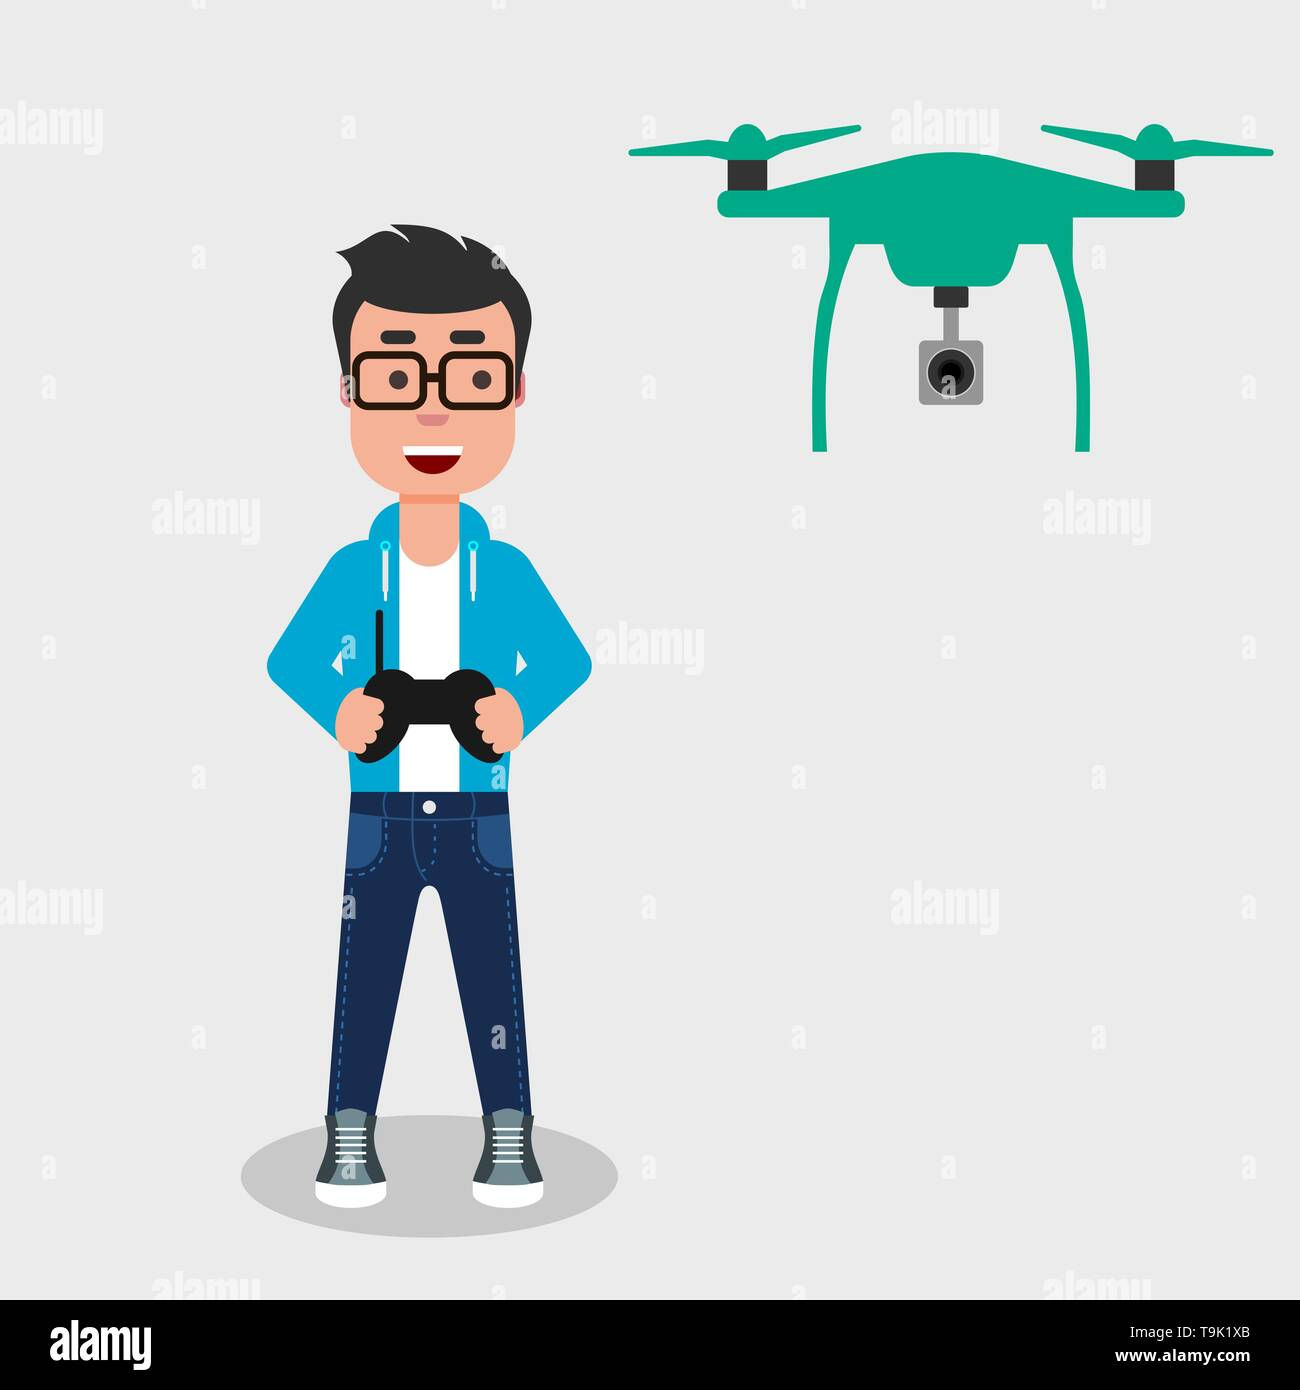 Young happy man flying drone with remote control. Smiling character controls aerial drone with a camera. Operating a drone to take pictures or video. - Stock Image